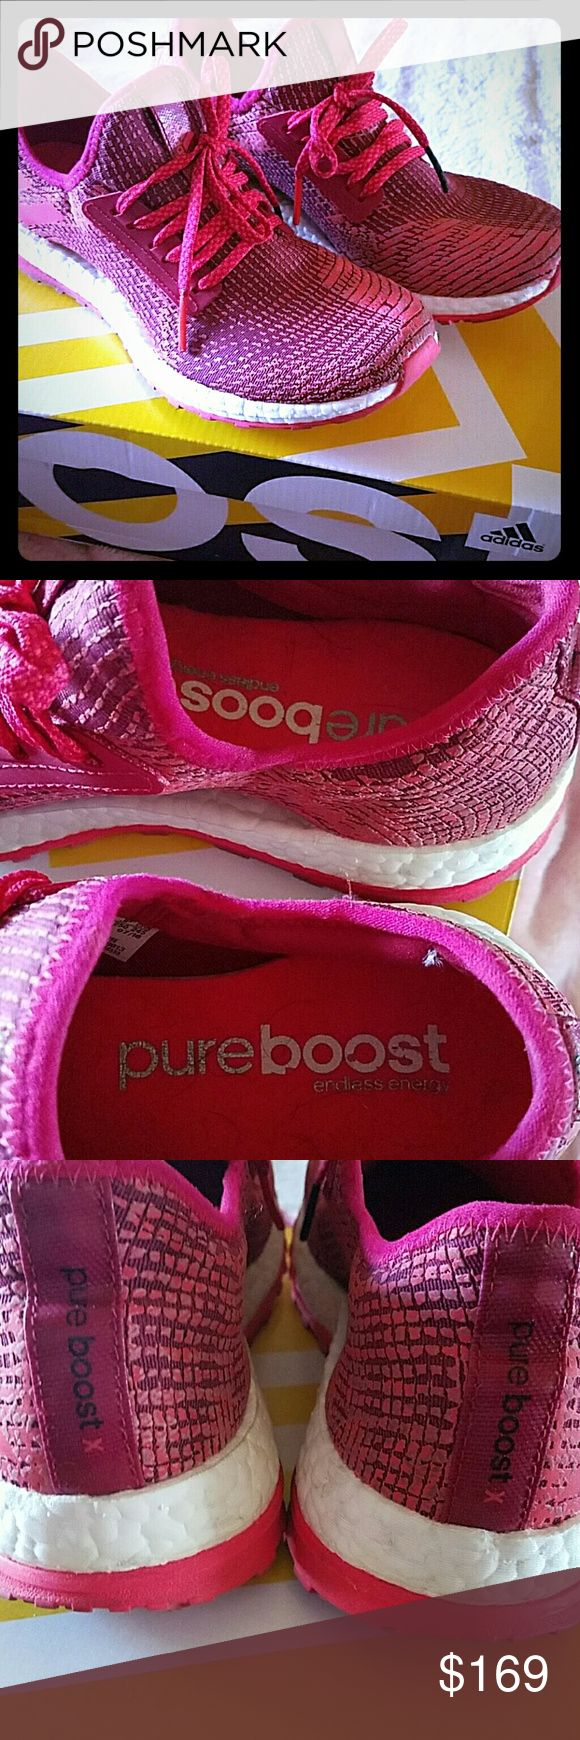 Adidas Pure Boost X Worn once, basically brand new. Comes with box  True to size Very comfortable, lightweight and breathable Adidas Shoes Athletic Shoes